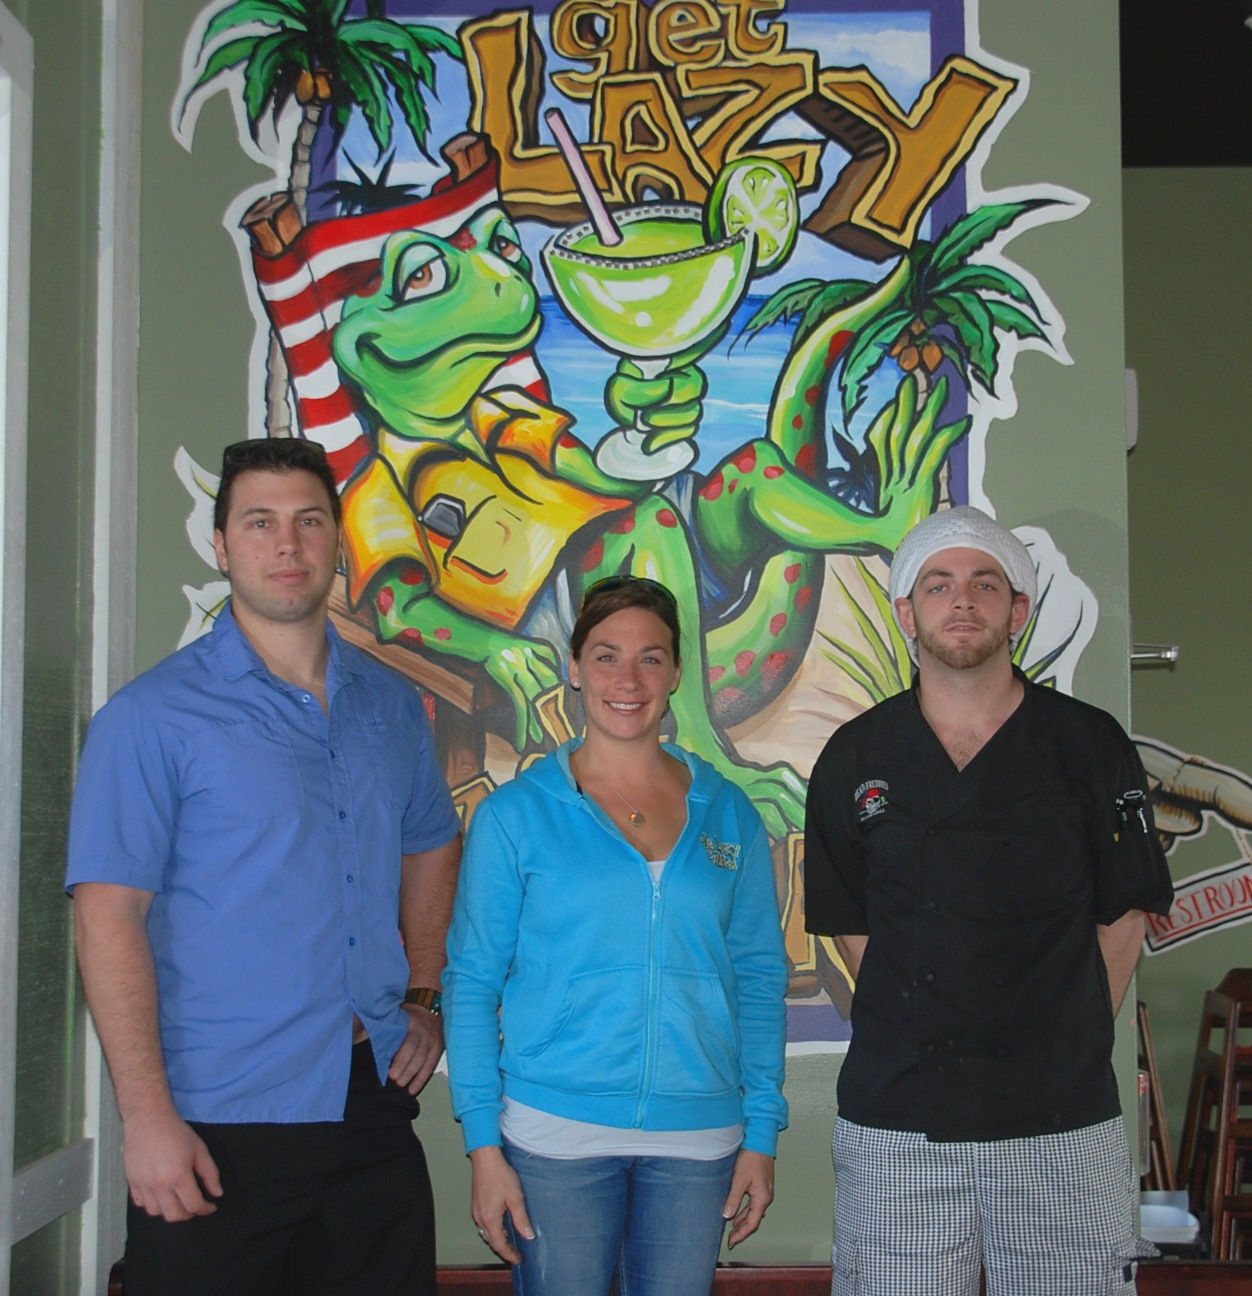 Among the new management team at de Lazy Lizard are, from left, General Managers Ben Vatayuk and Jen Robins and Executive Chef Mitch Cook. Photo by Shawn Soper